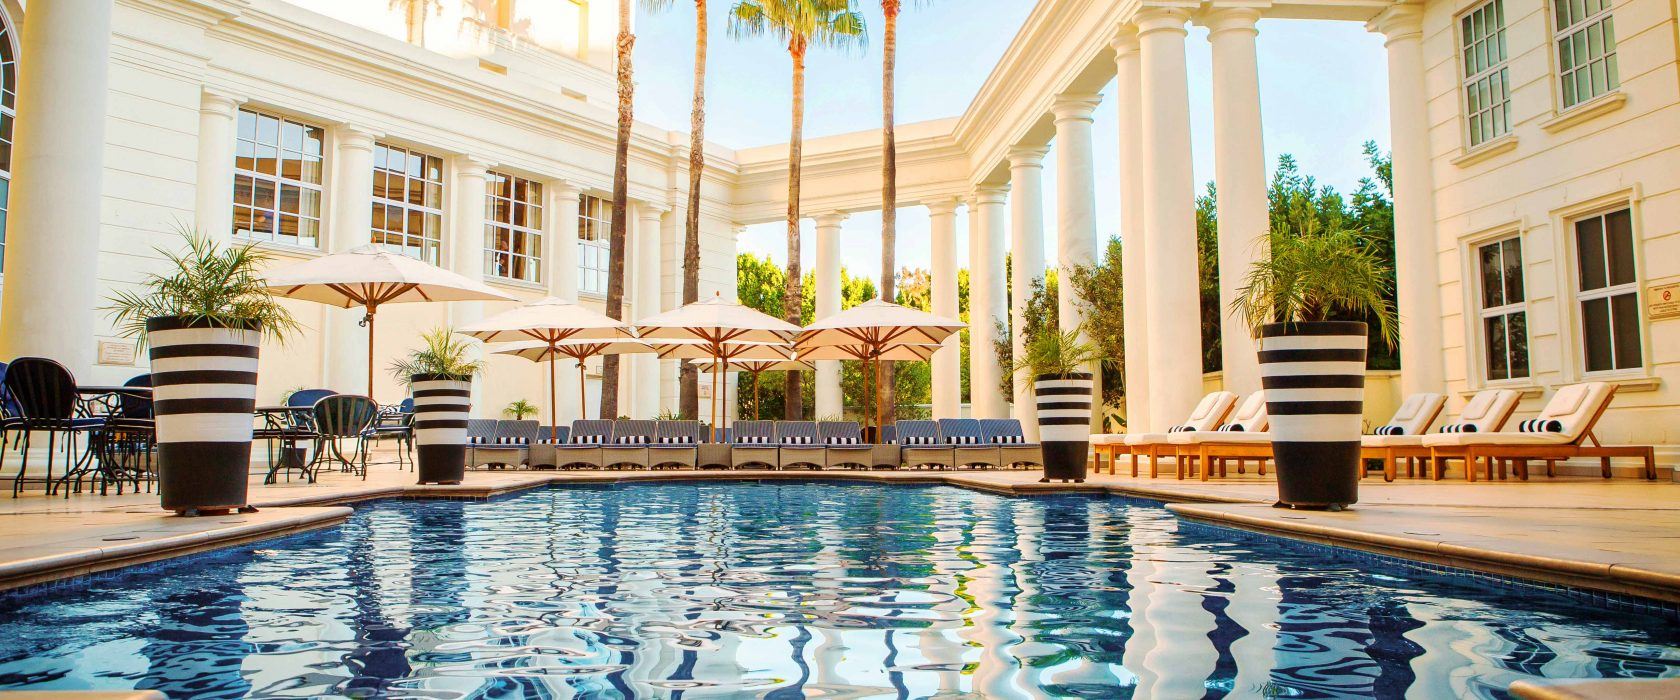 Pool at Southern The Cullinan